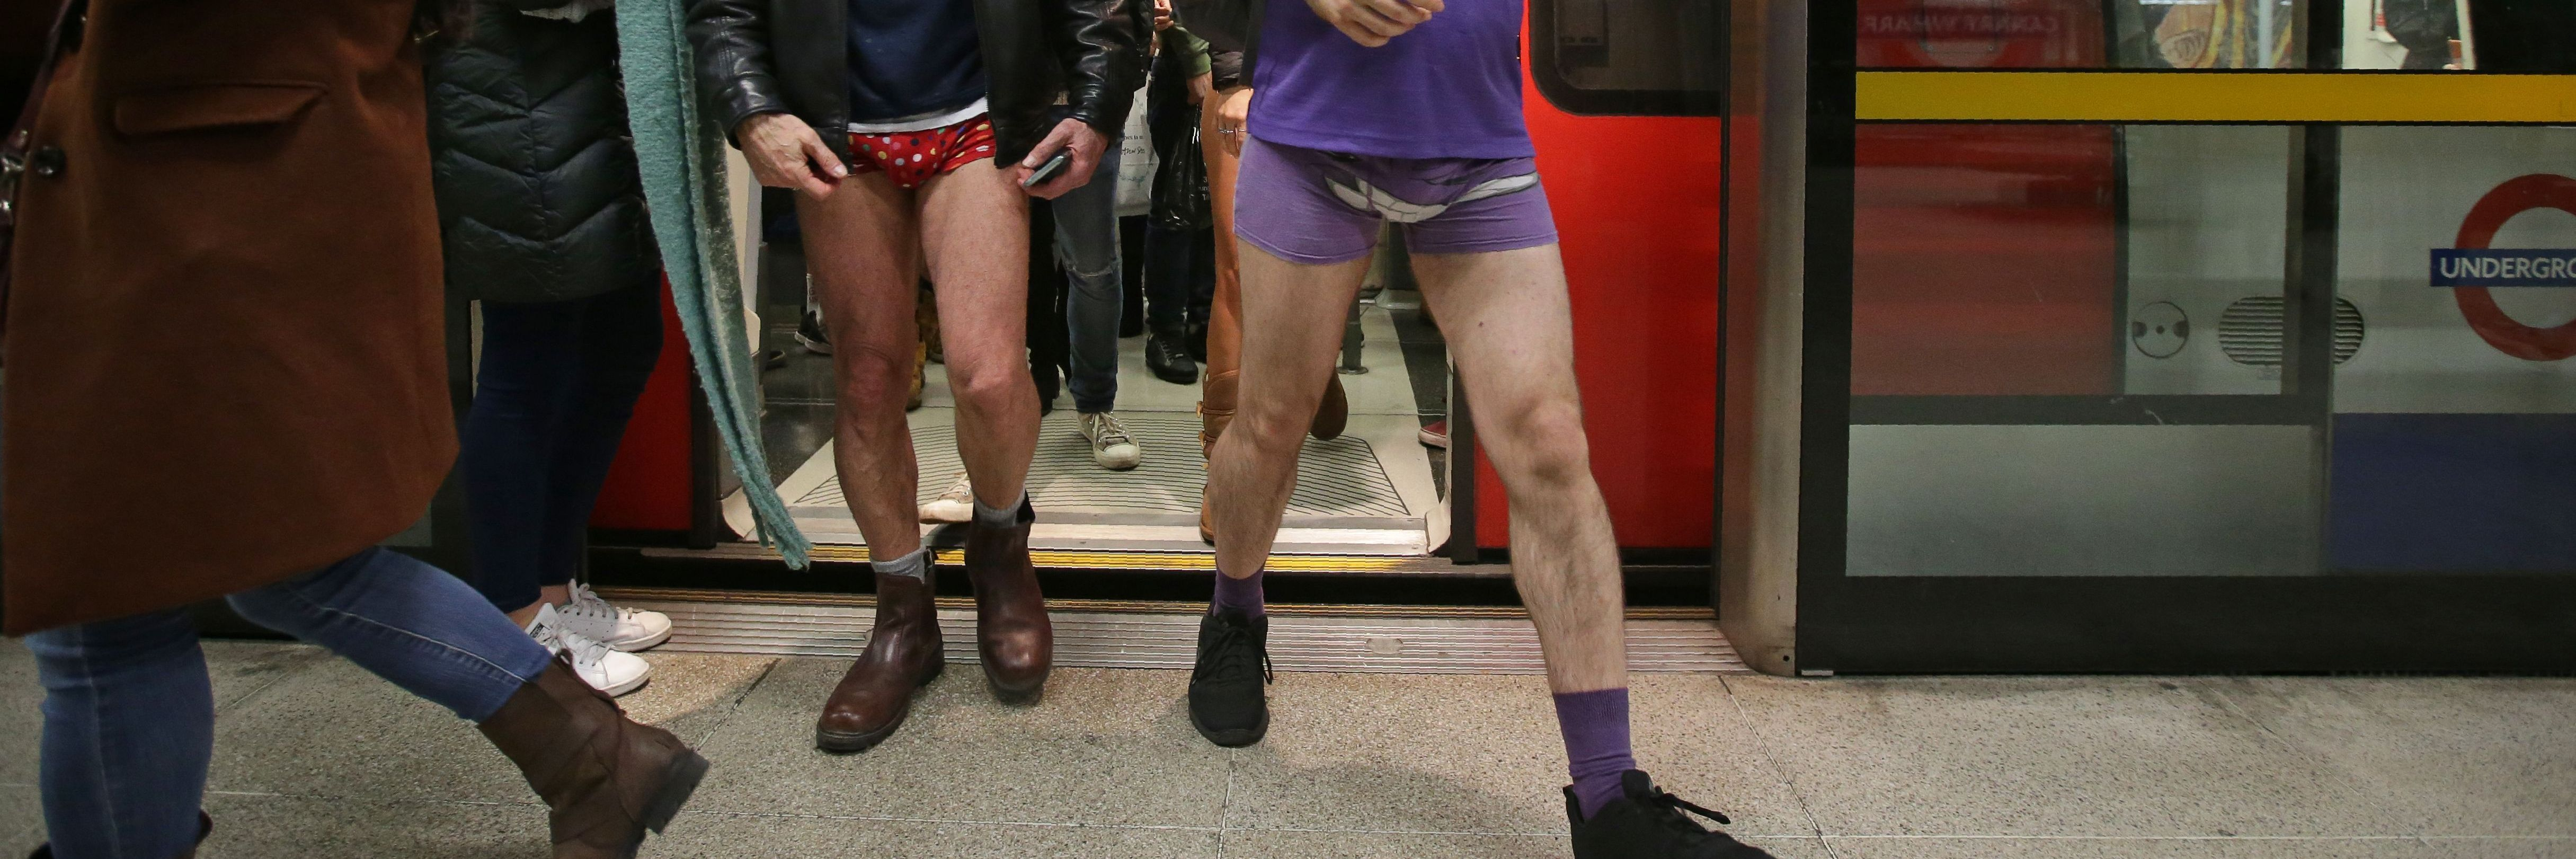 Lube On The Tube Update Gay Brits Fined For Wild Public Threesome